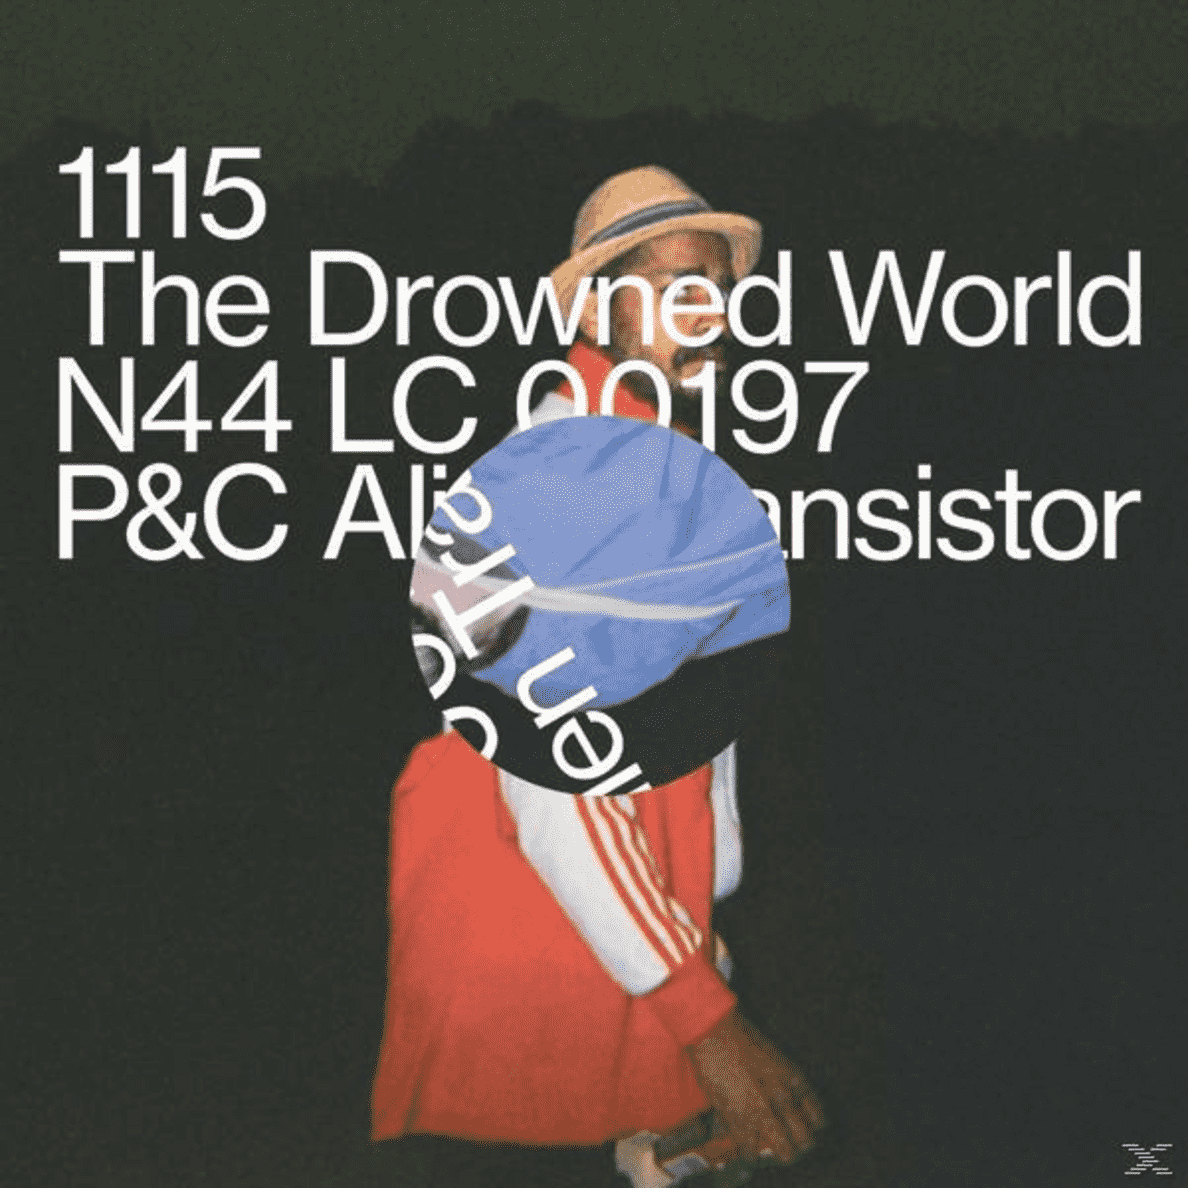 The Drowned World 1115 auf LP + Download